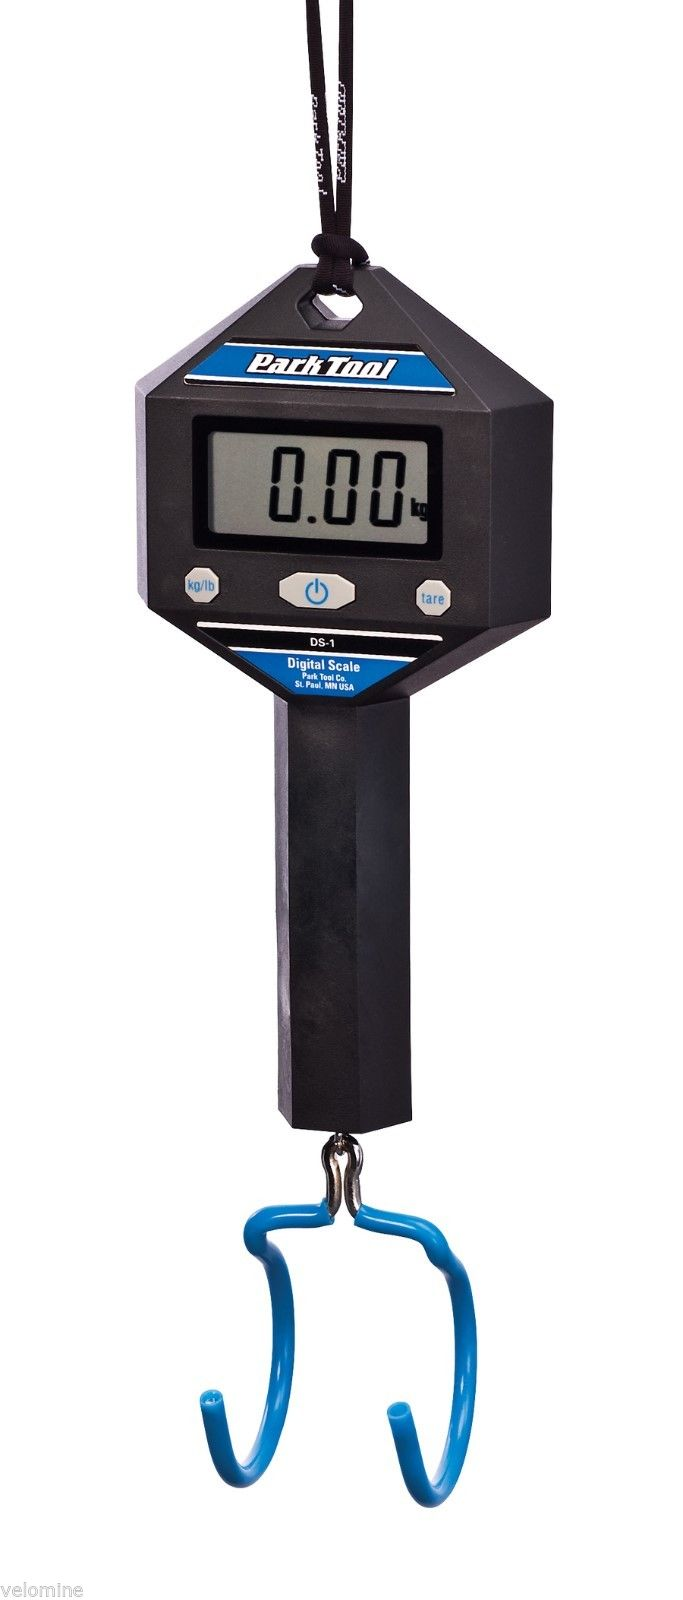 Park Tool DS-1 Digital Bicycle Scale - weigh your bike with ease